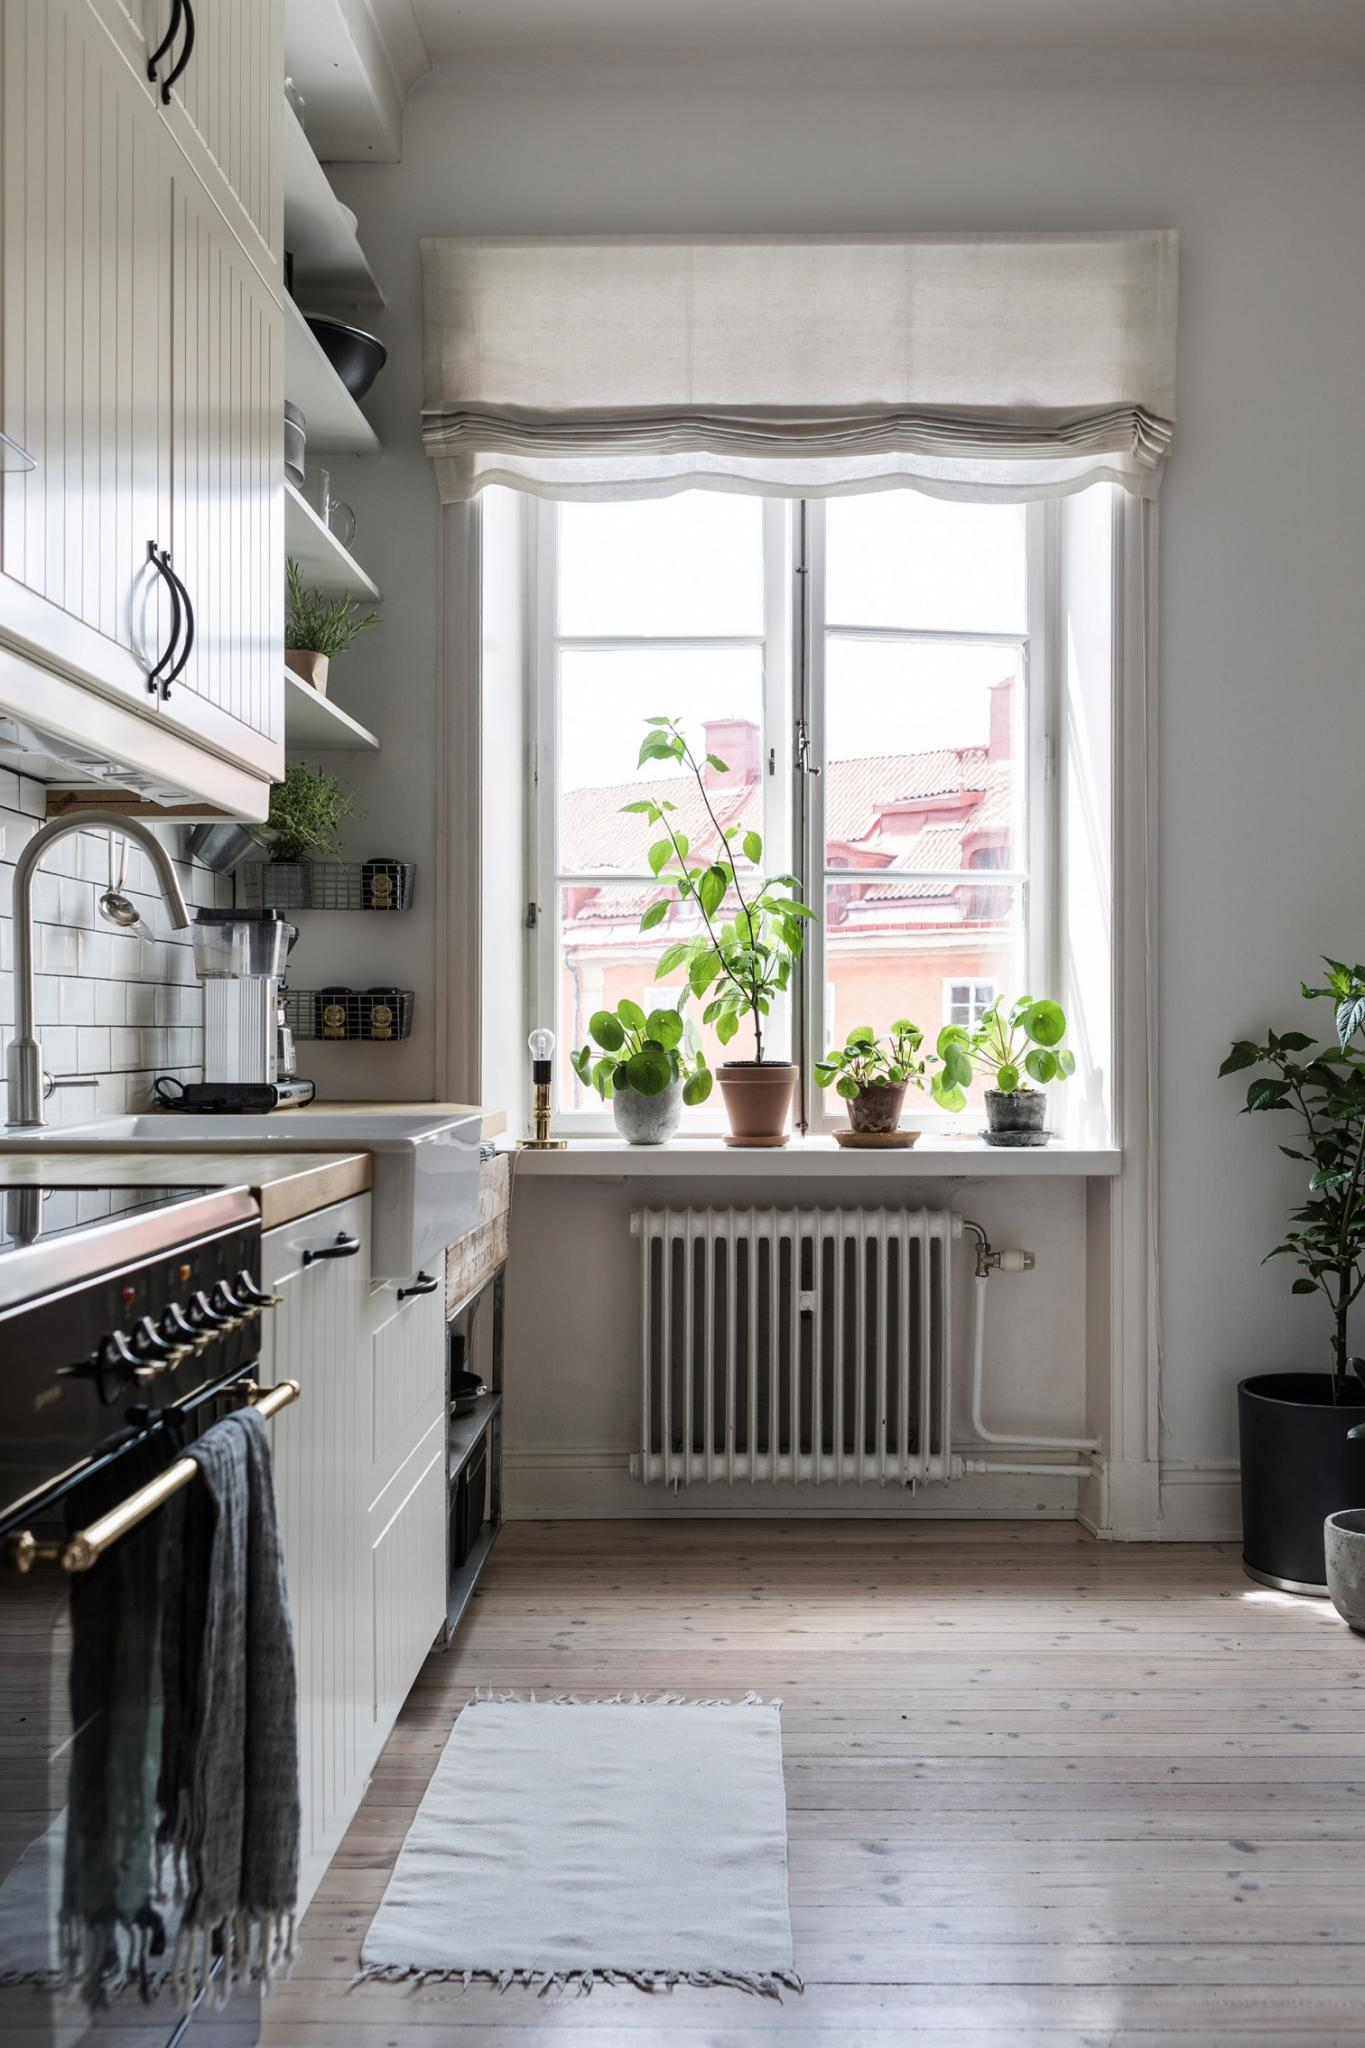 Open kitchen design COCO LAPINE DESIGNCOCO LAPINE DESIGN